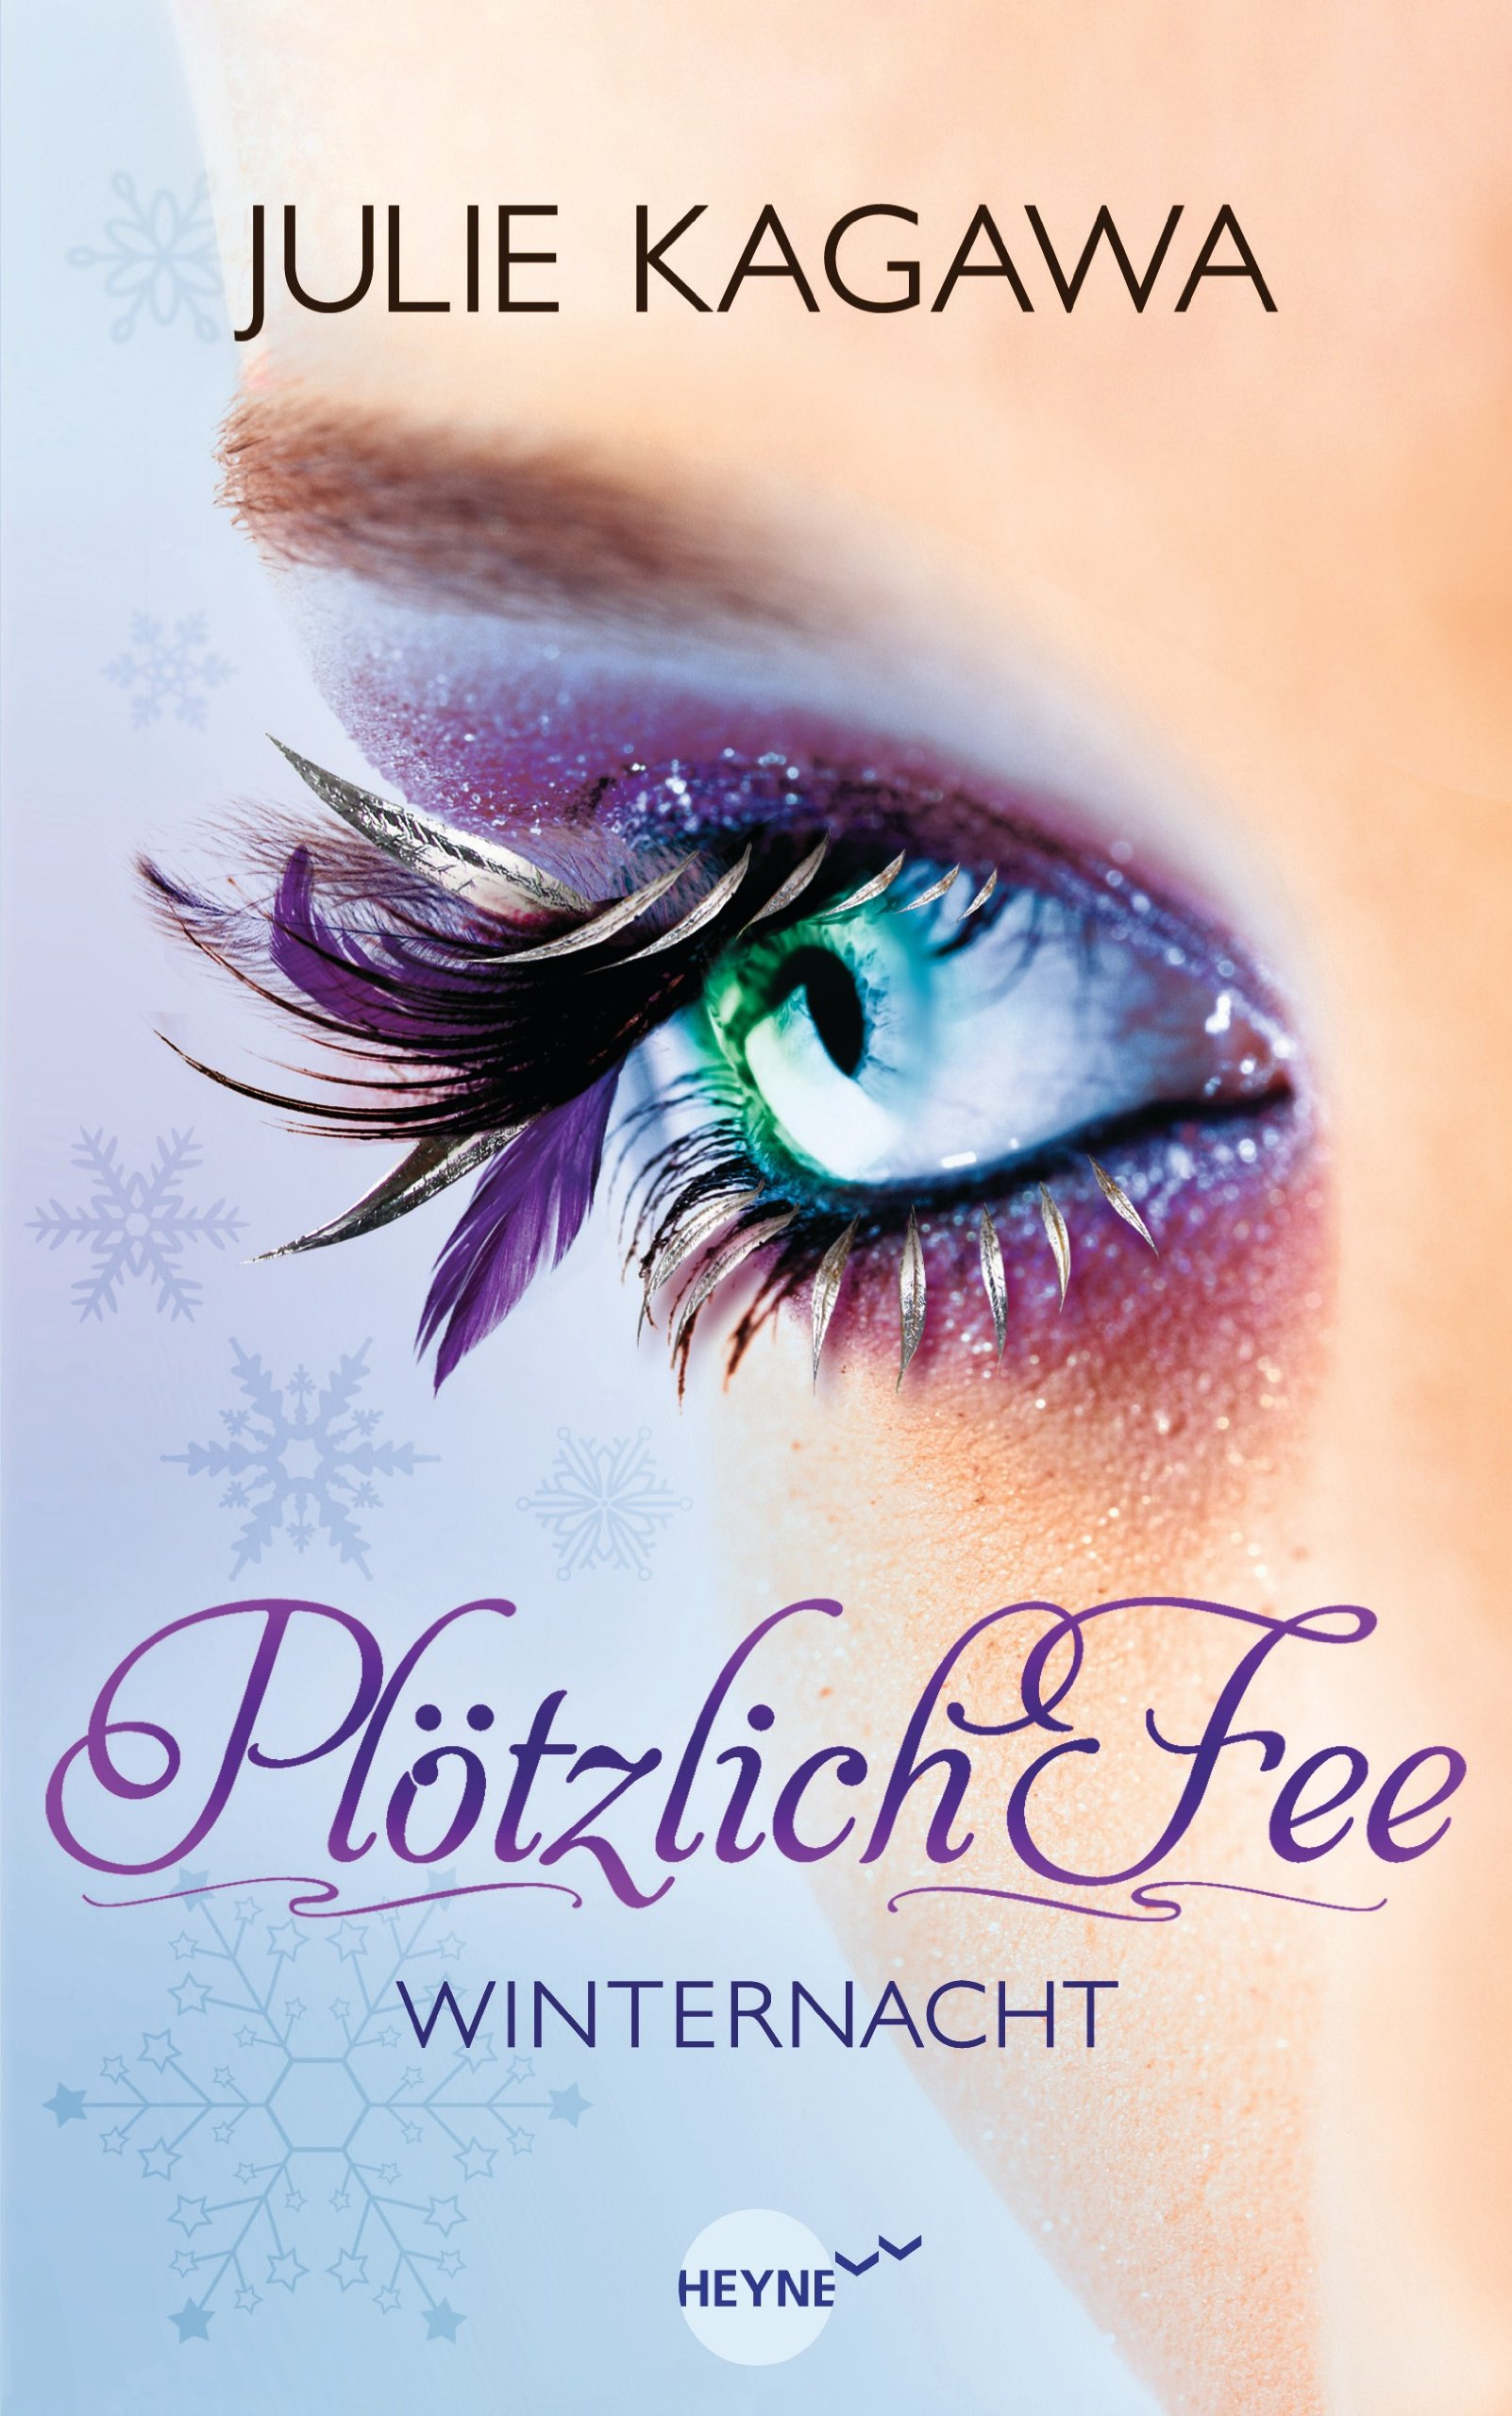 http://www.amazon.de/Pl%C3%B6tzlich-Fee-Winternacht-Roman-fliegt/dp/3453267222/ref=sr_1_2?ie=UTF8&qid=1416239703&sr=8-2&keywords=pl%C3%B6tzlich+fee